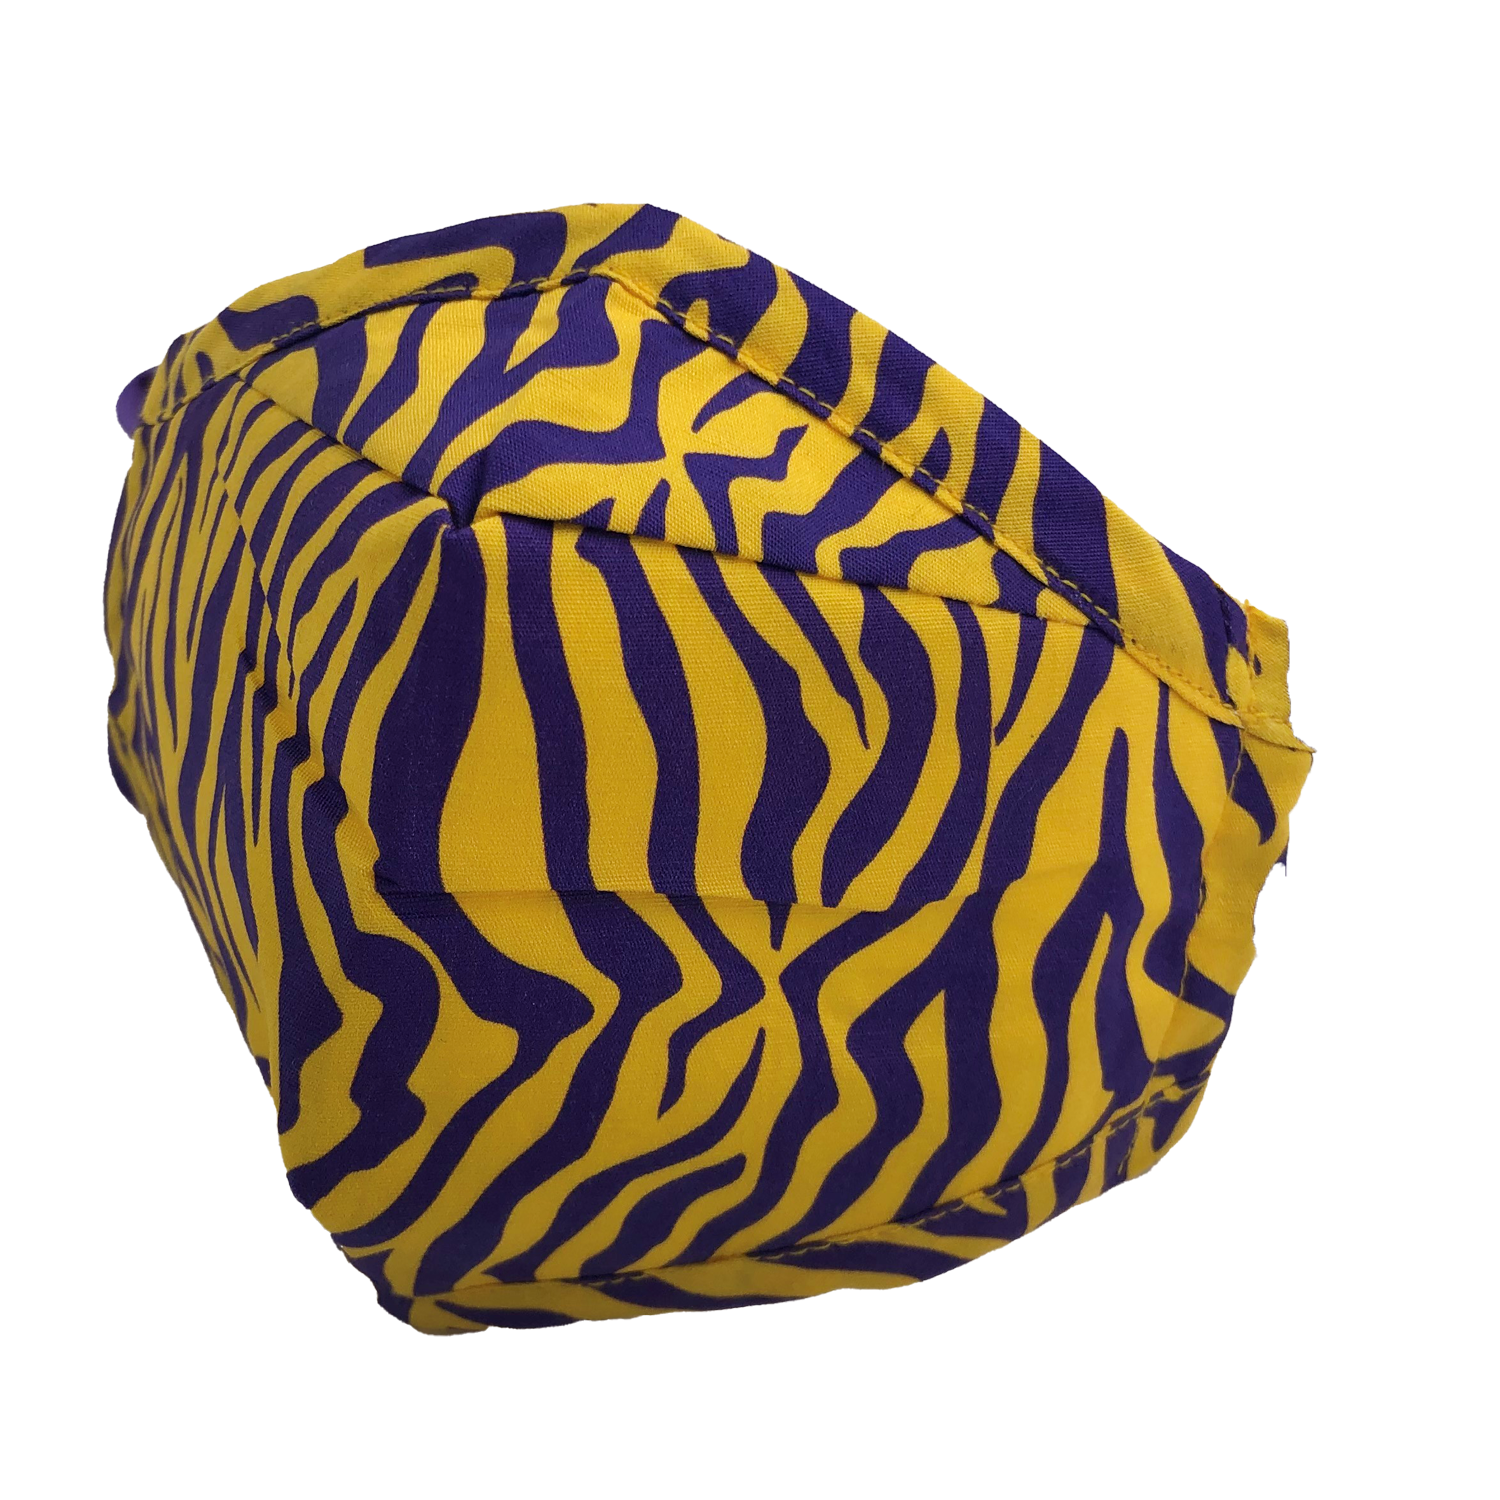 ADULT MASK PURPLE YELLOW TIGER